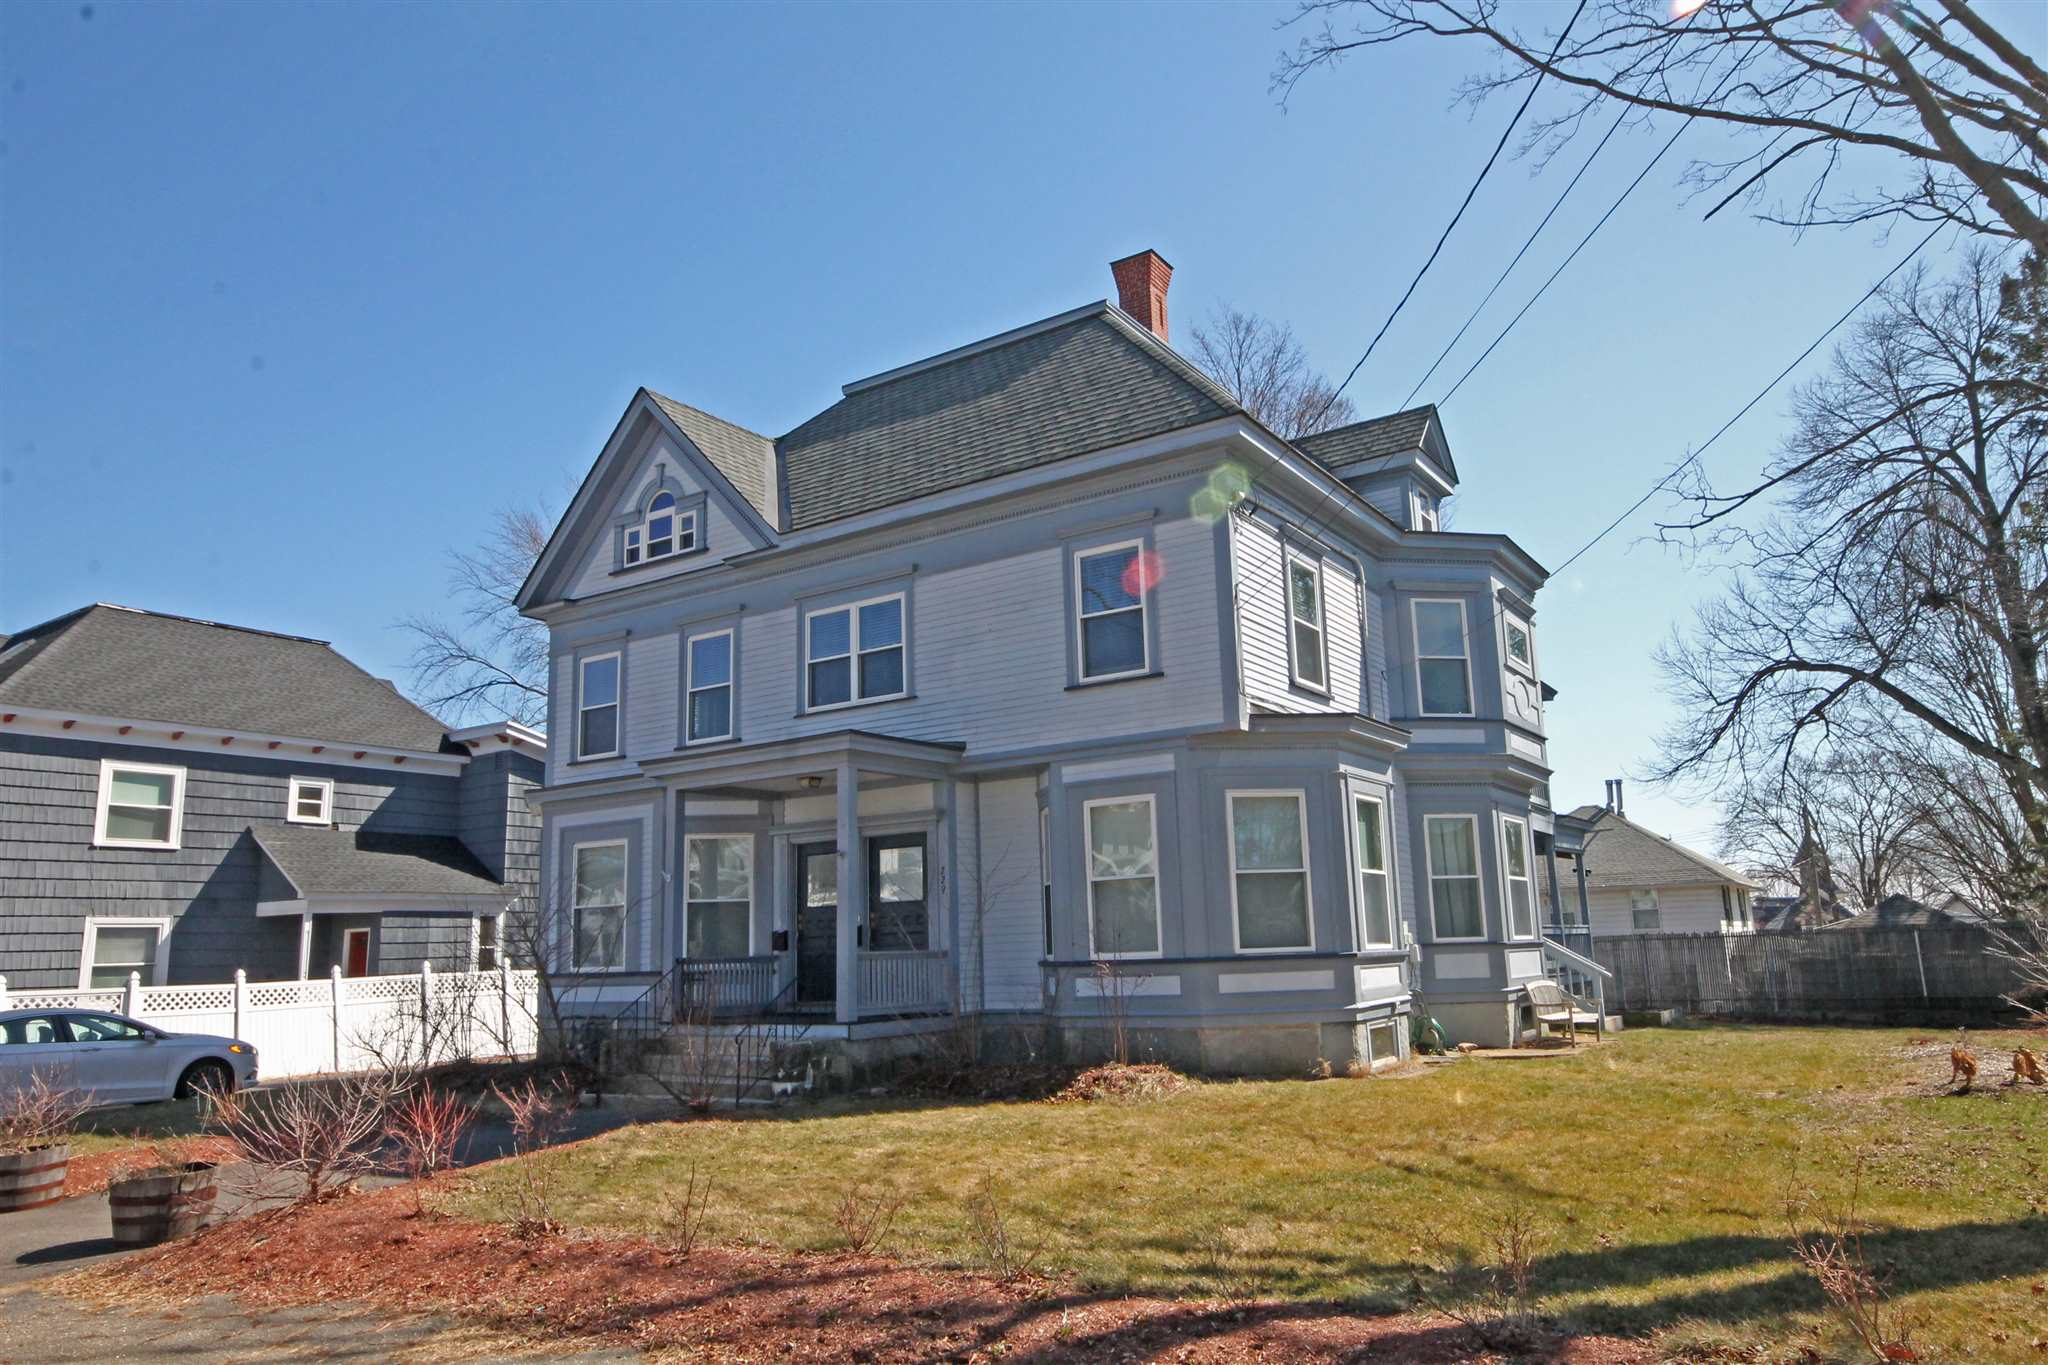 Photo of 229 Prospect Street Manchester NH 03104